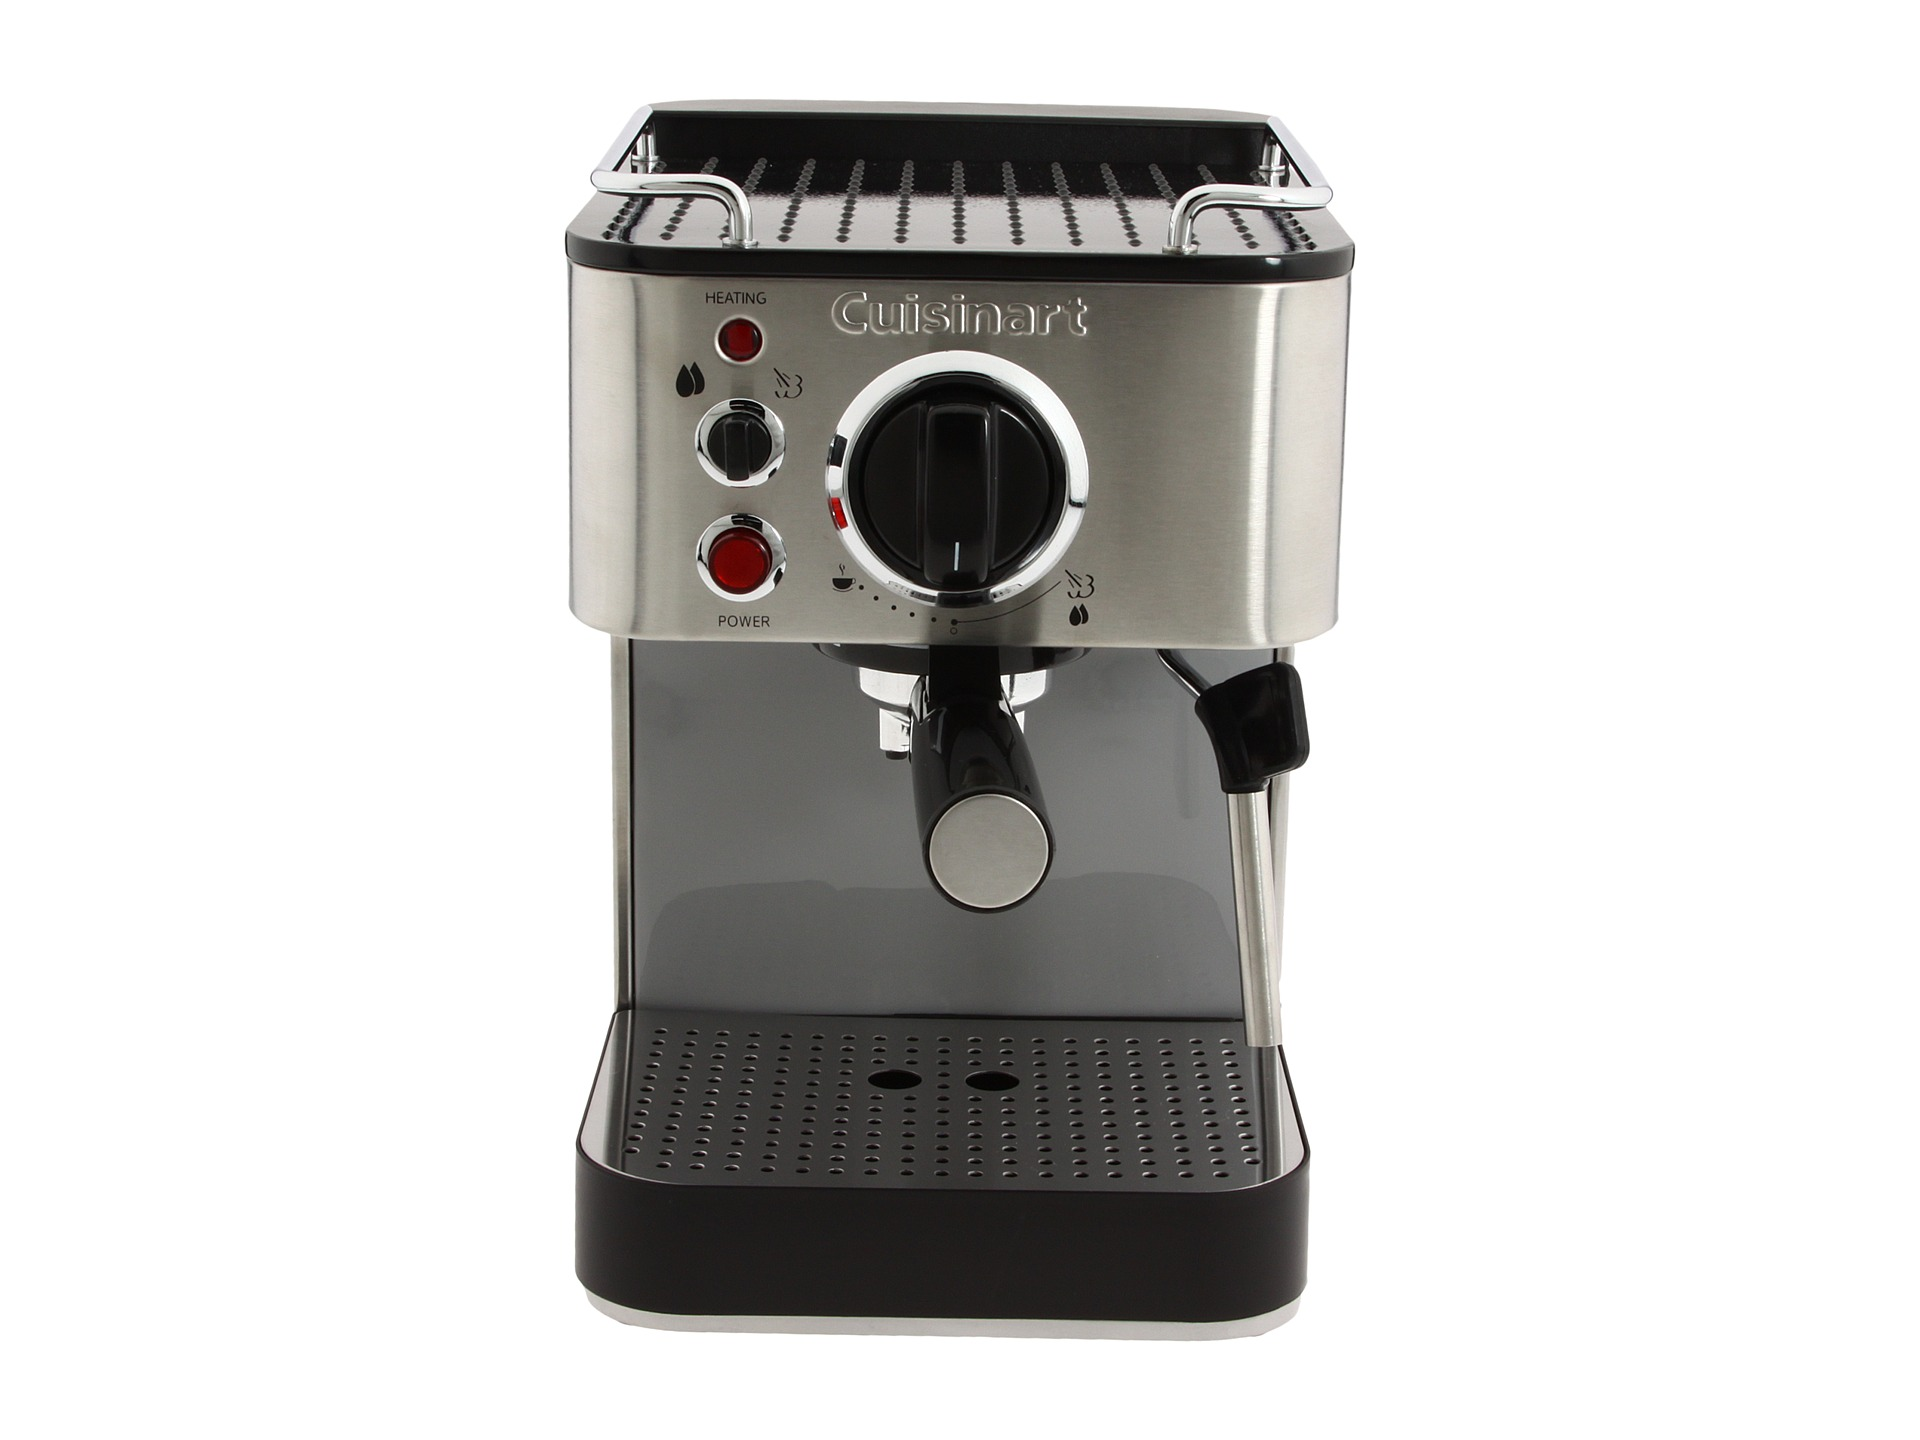 Cuisinart Em 100 Espresso Maker Stainless Steel Shipped Free at Zappos